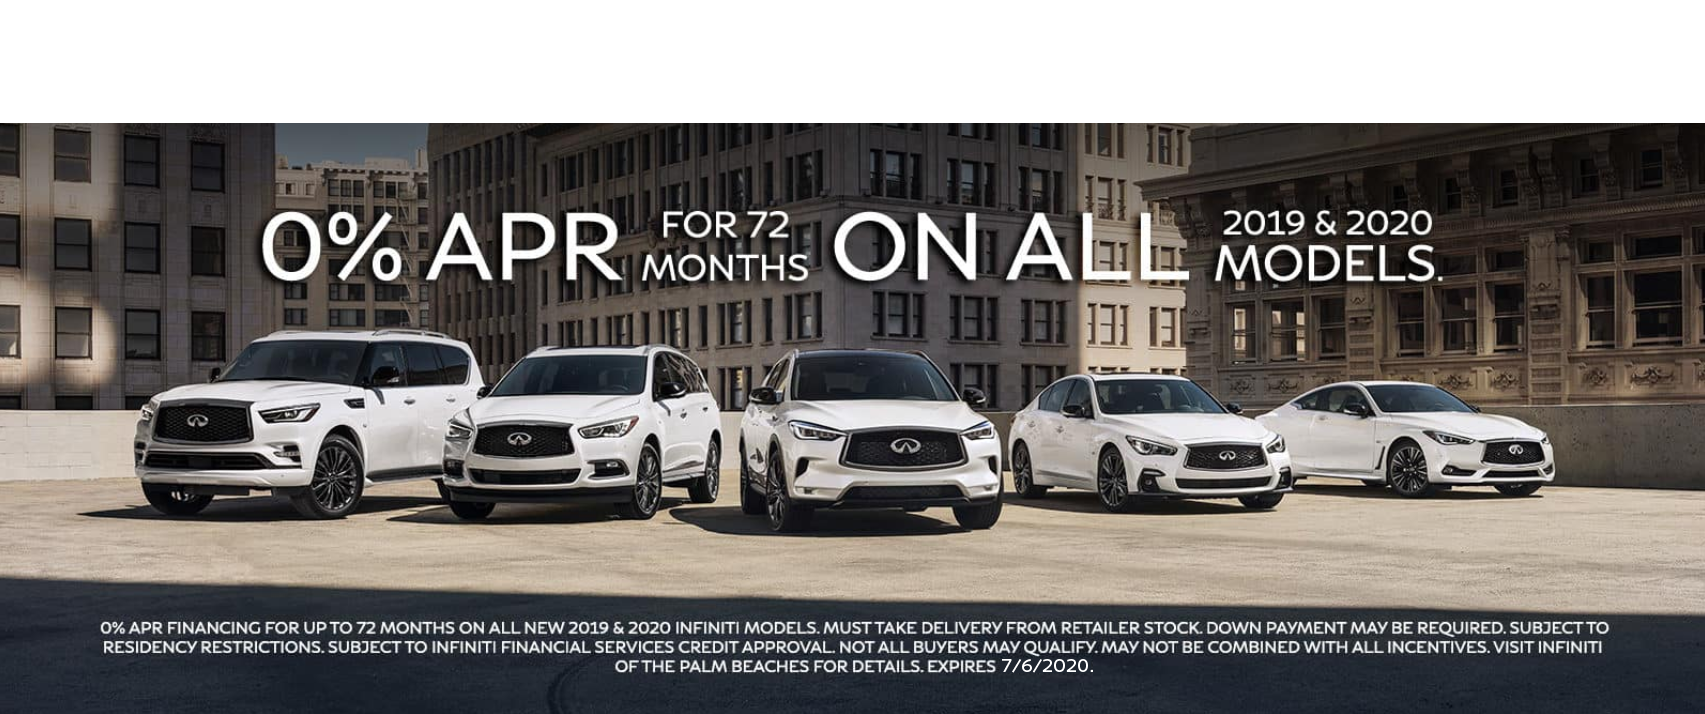 0% APR fo 72 months on all new 2019 and 2020 INFINITI Models